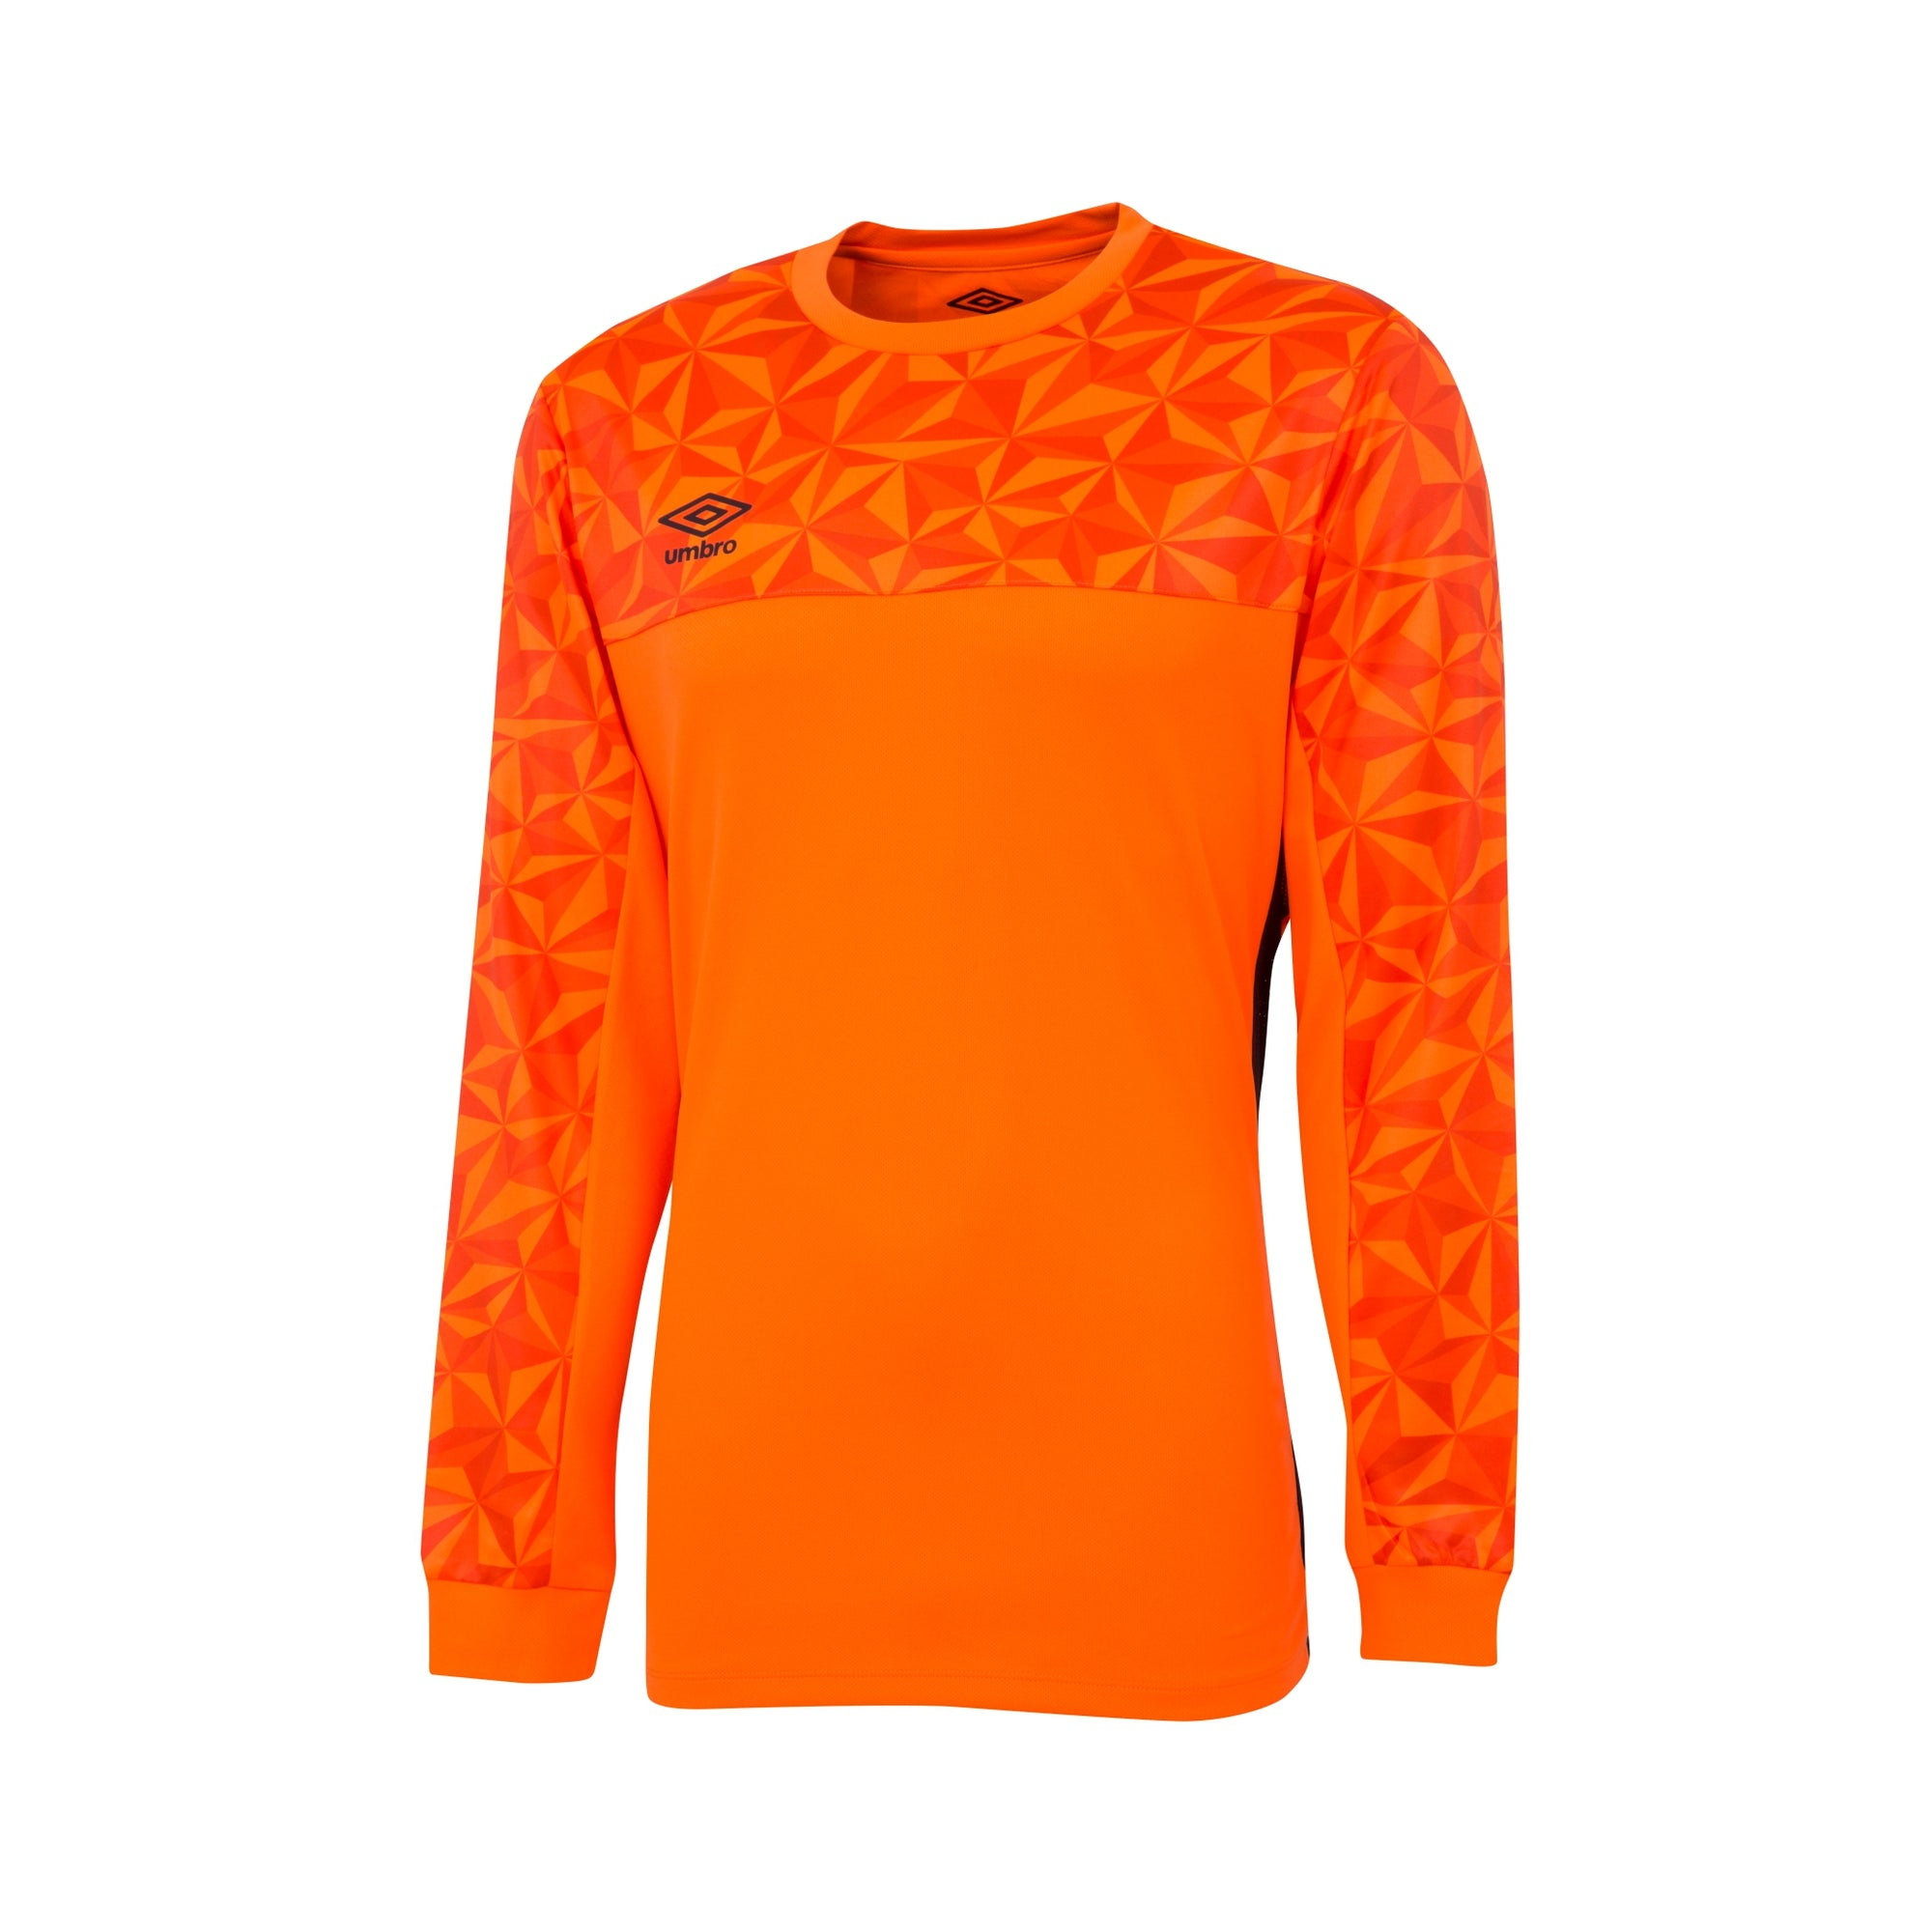 Umbro Portero LS Jersey - Shocking Orange